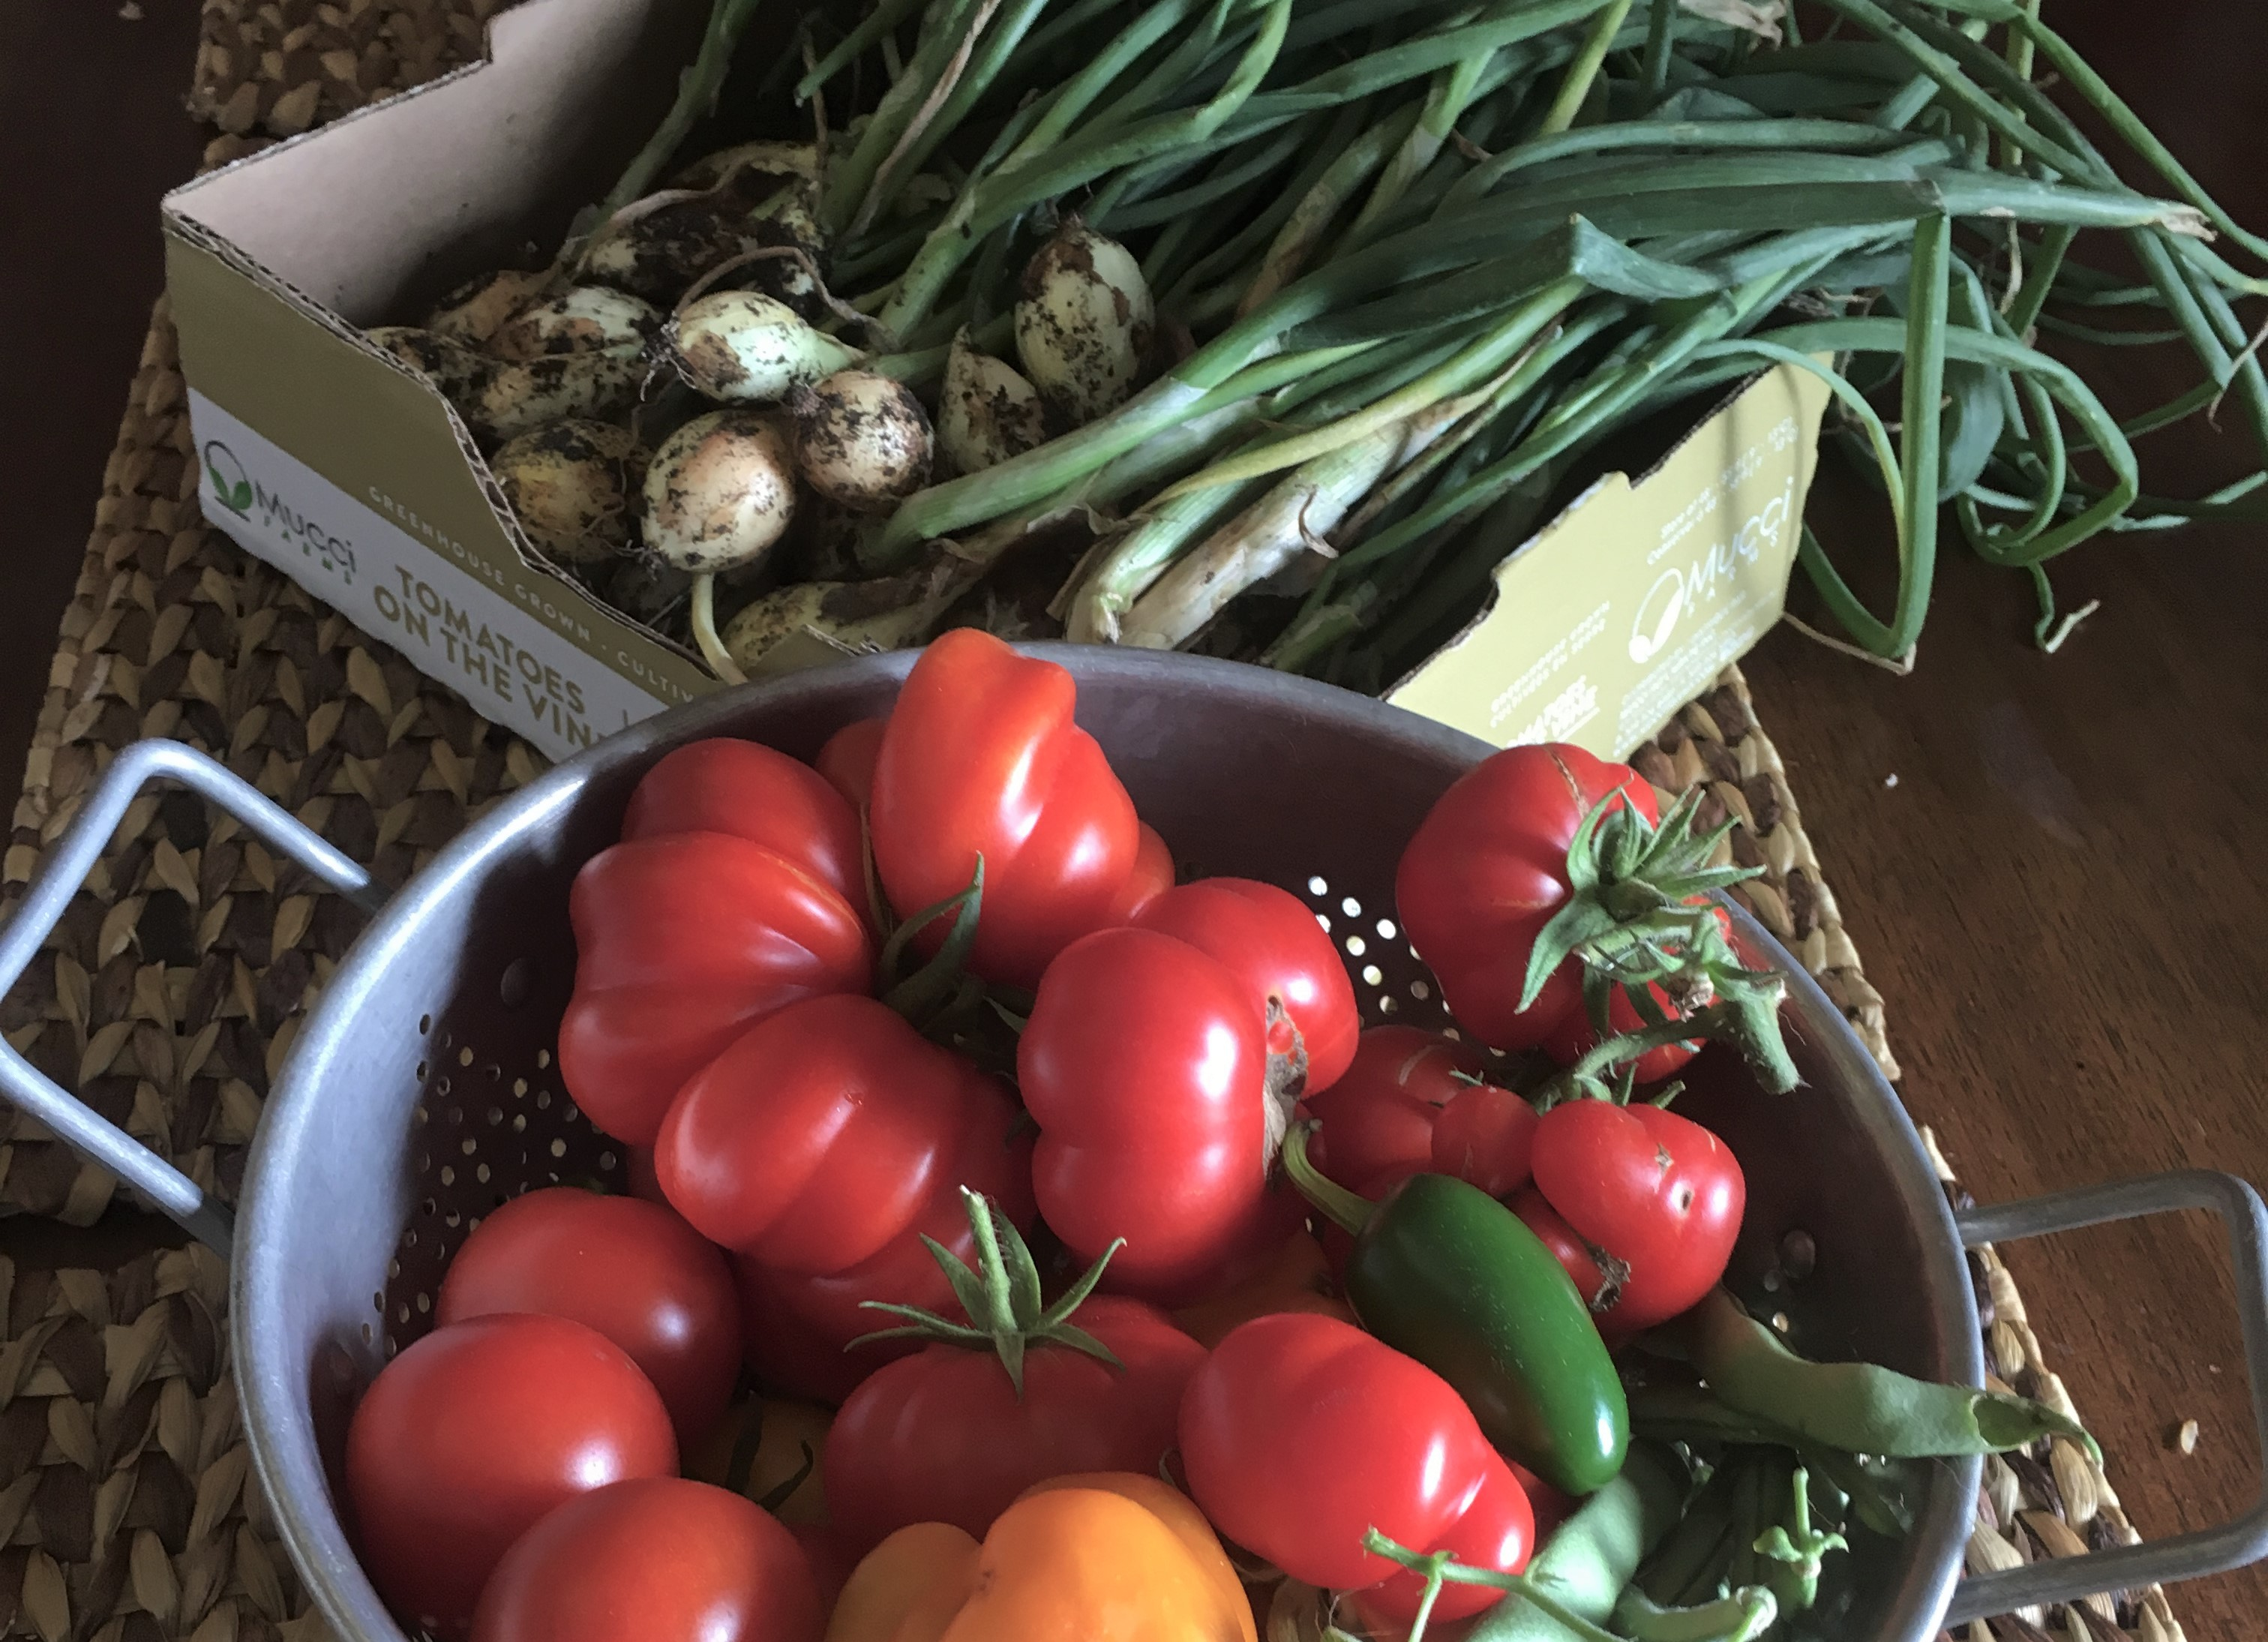 We're Starting a CSA! And Other News